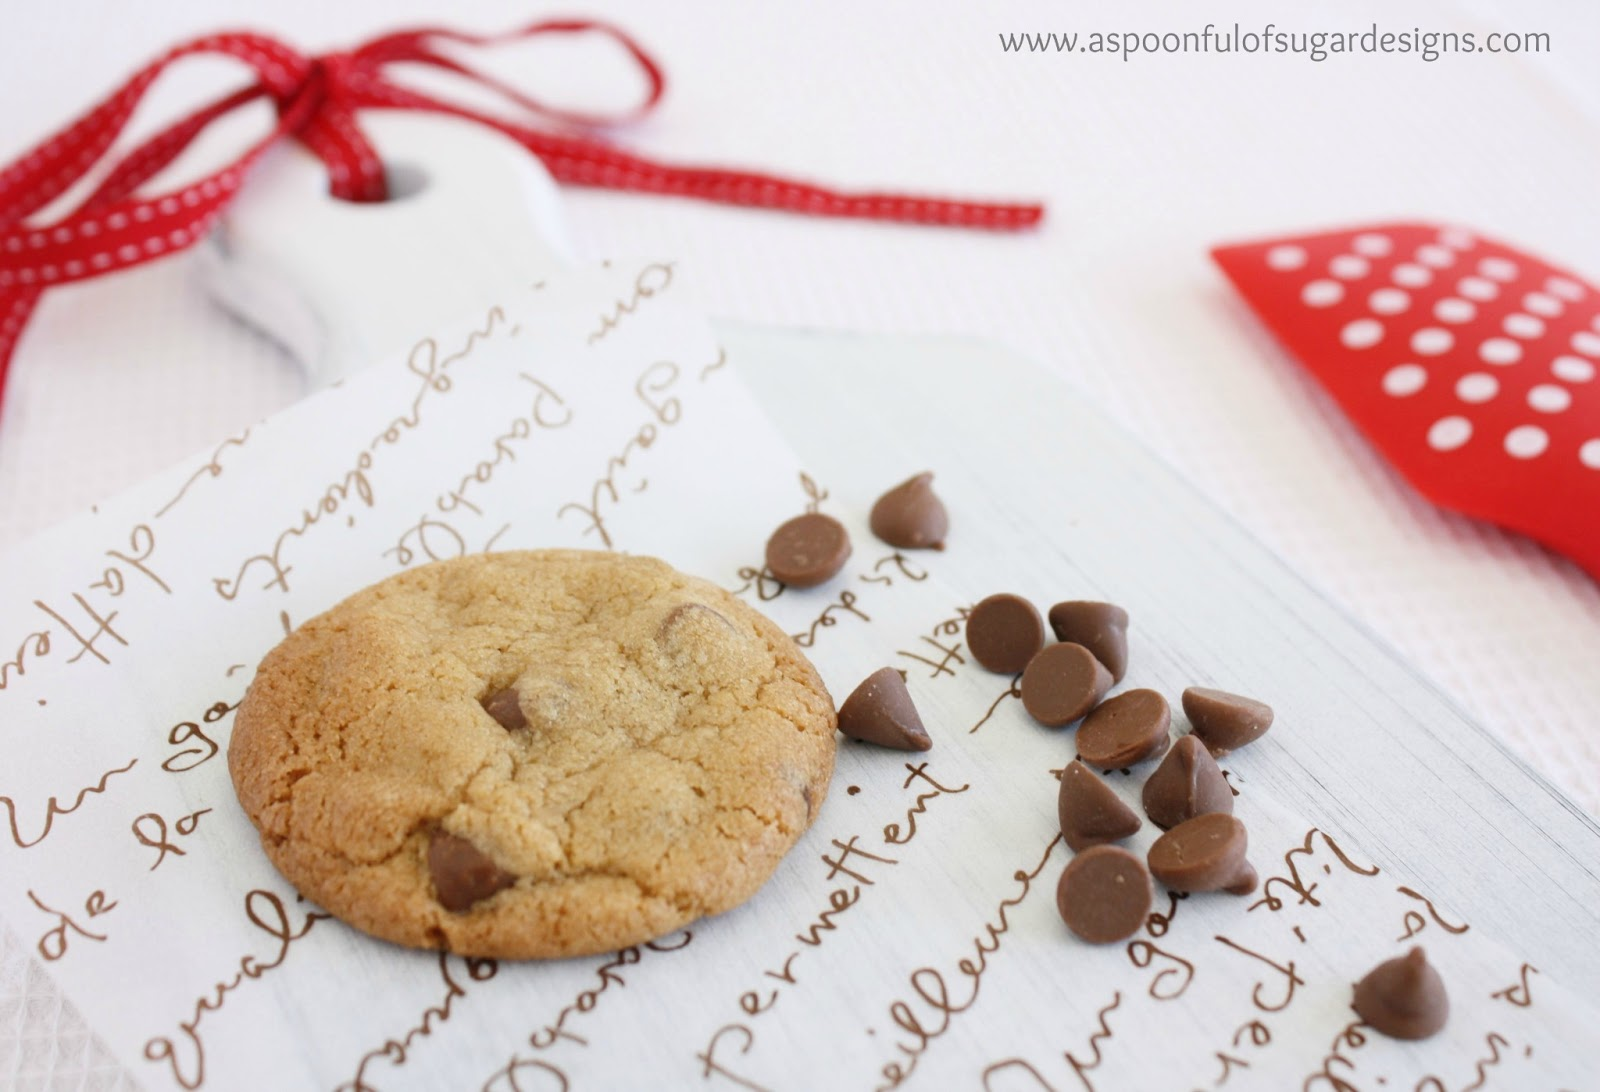 Browned Butter Chocolate Chip Cookies - A Spoonful of Sugar